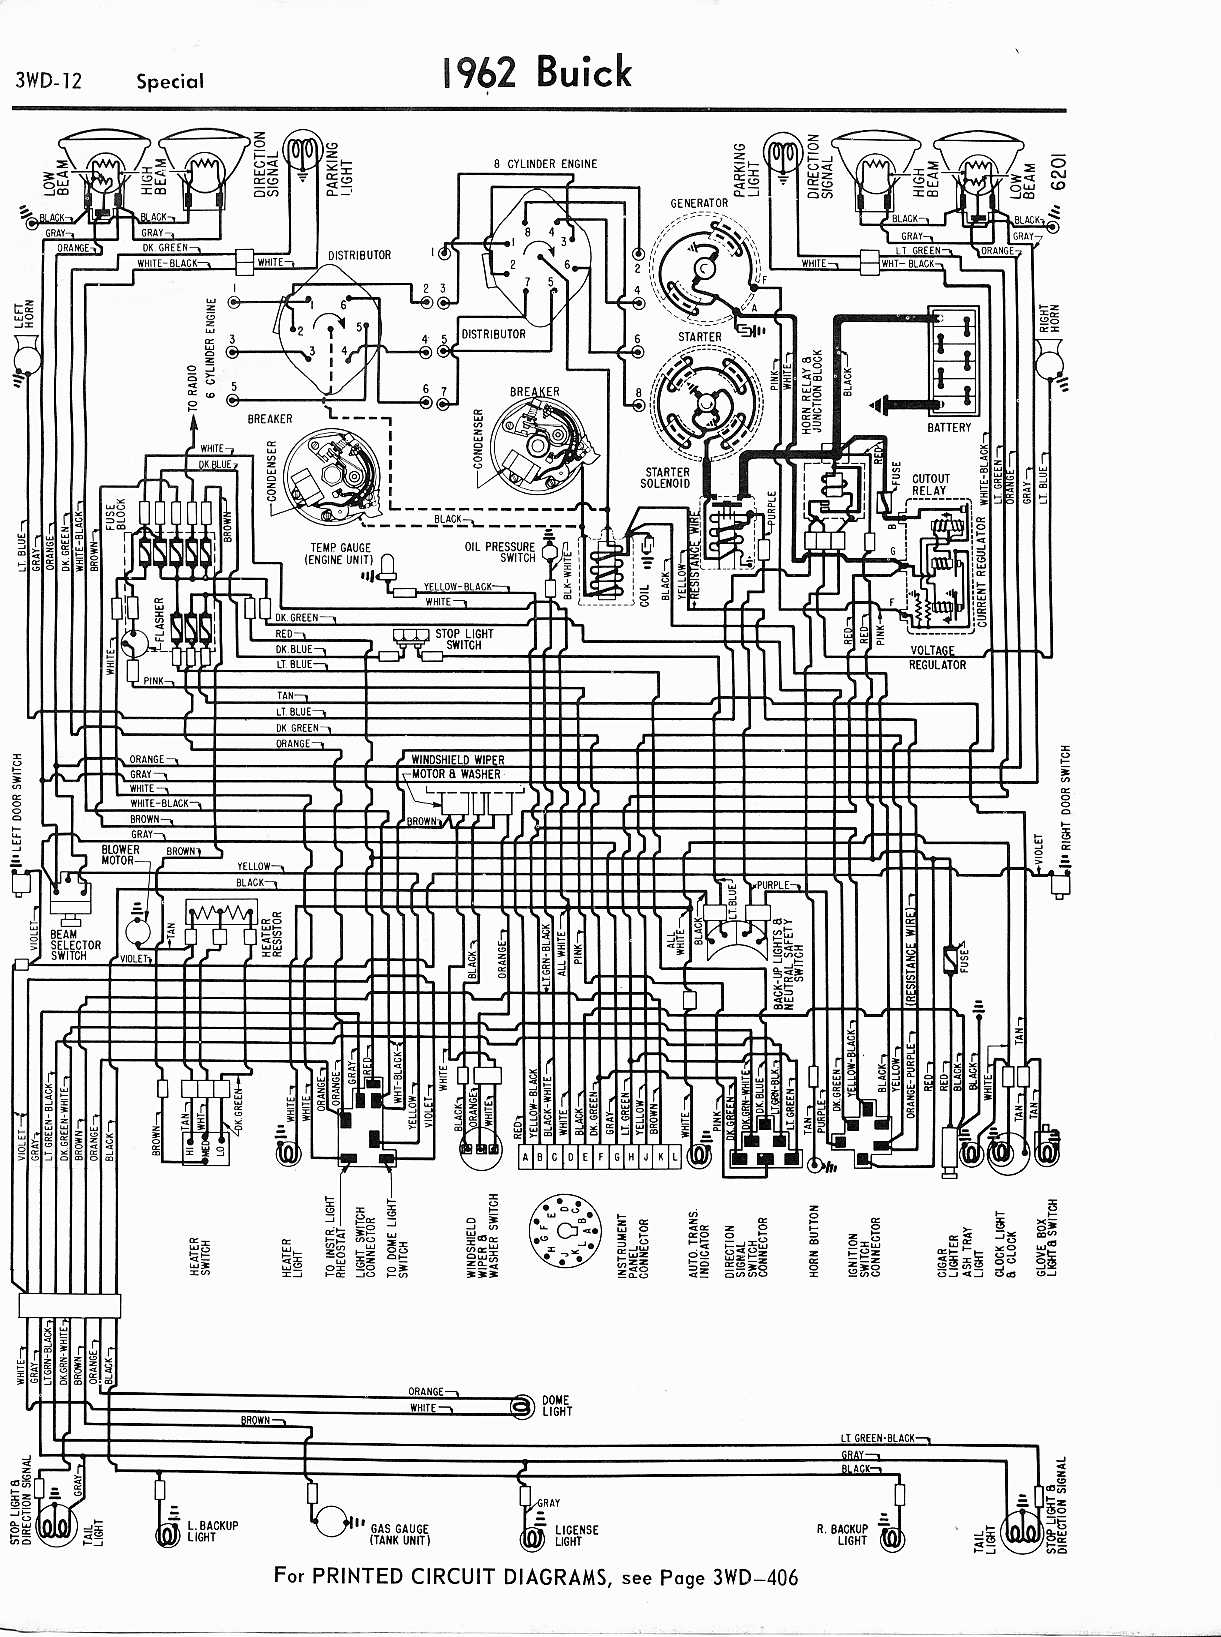 1972 Buick Gs Wiring Diagram Schematic Diagrams For Skylark 1970 Trusted 455